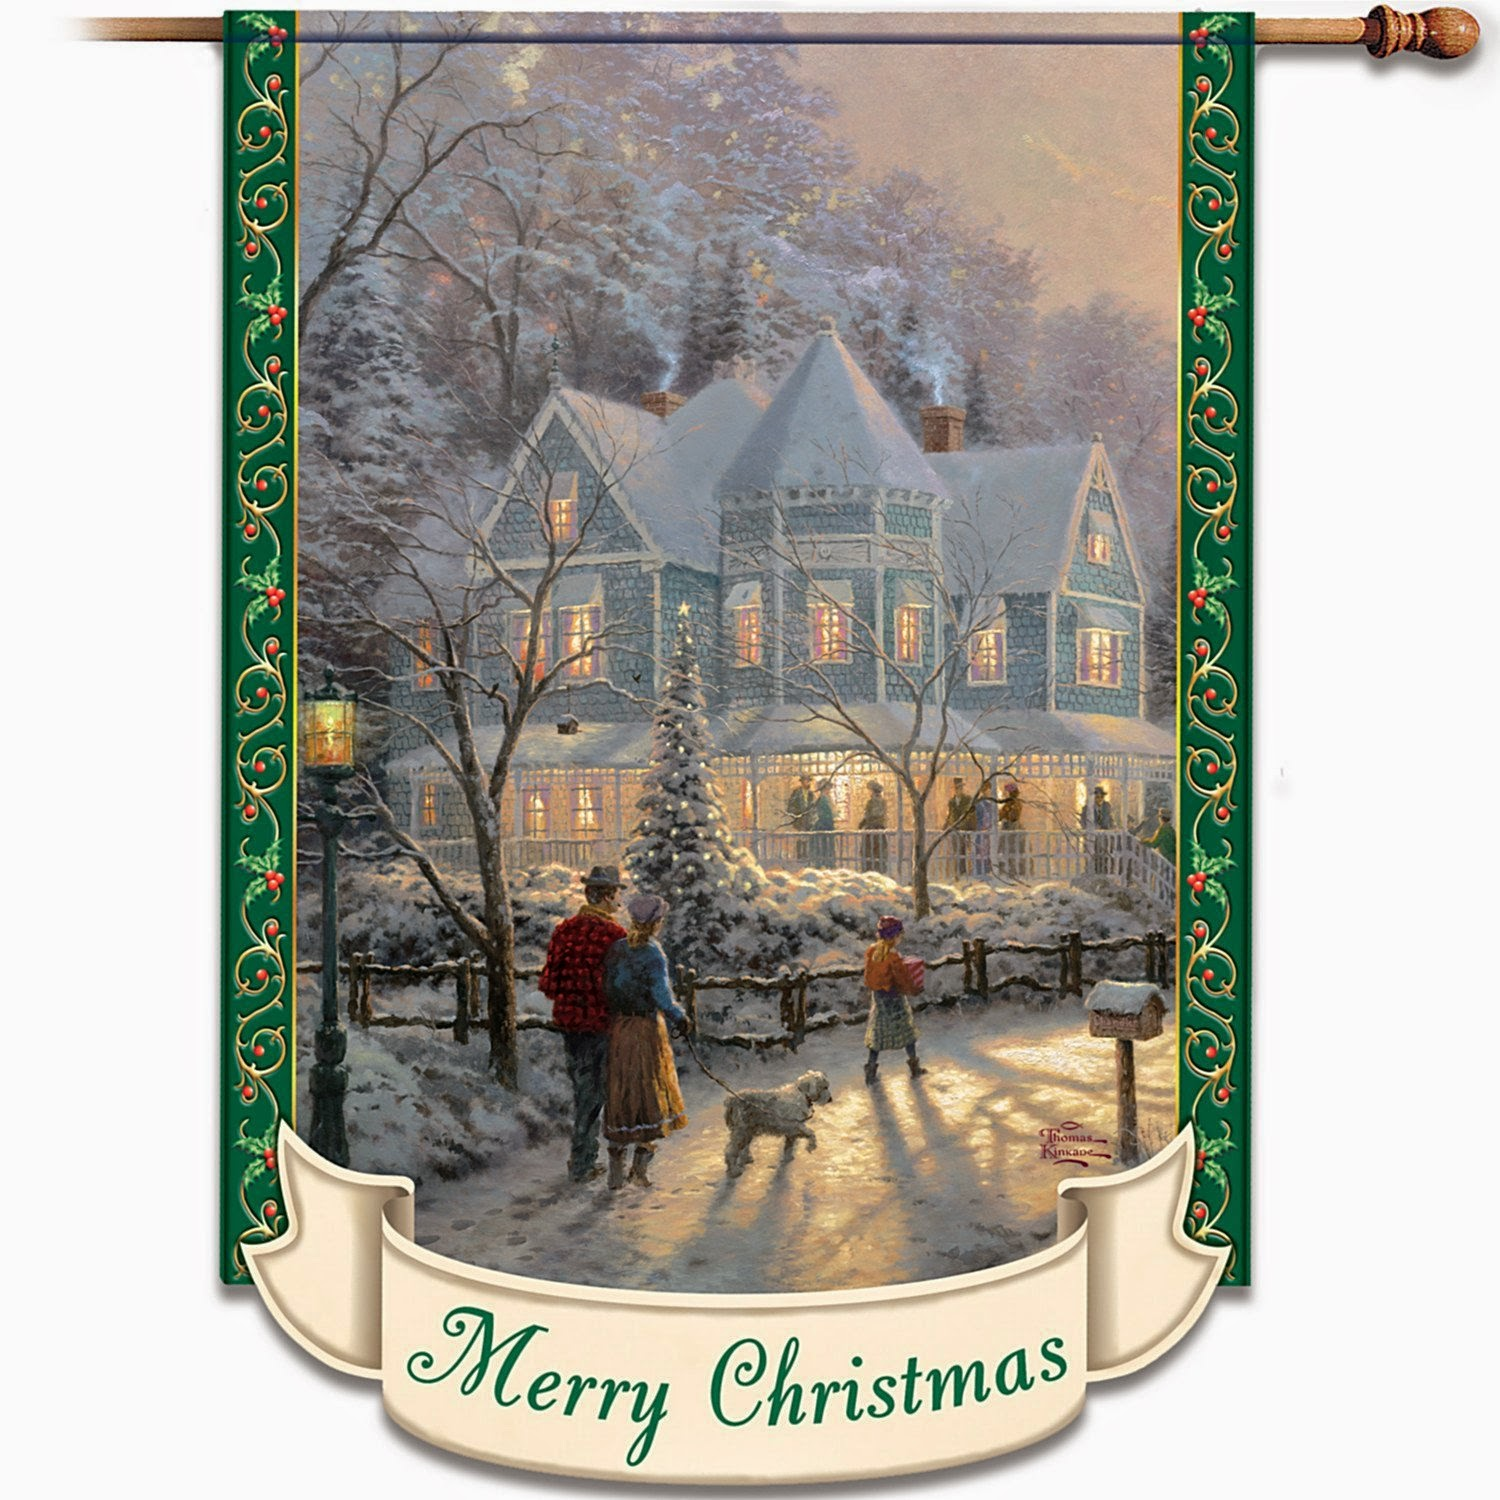 http://www.amazon.com/Kinkade-Christmas-Decorative-Hamilton-Collection/dp/B00KI3QFAI%3Fpsc%3D1%26SubscriptionId%3D14H876SFAKFS0EHBYQ02%26tag%3Dhubacct4139-20%26linkCode%3Dxm2%26camp%3D2025%26creative%3D165953%26creativeASIN%3DB00KI3QFAI